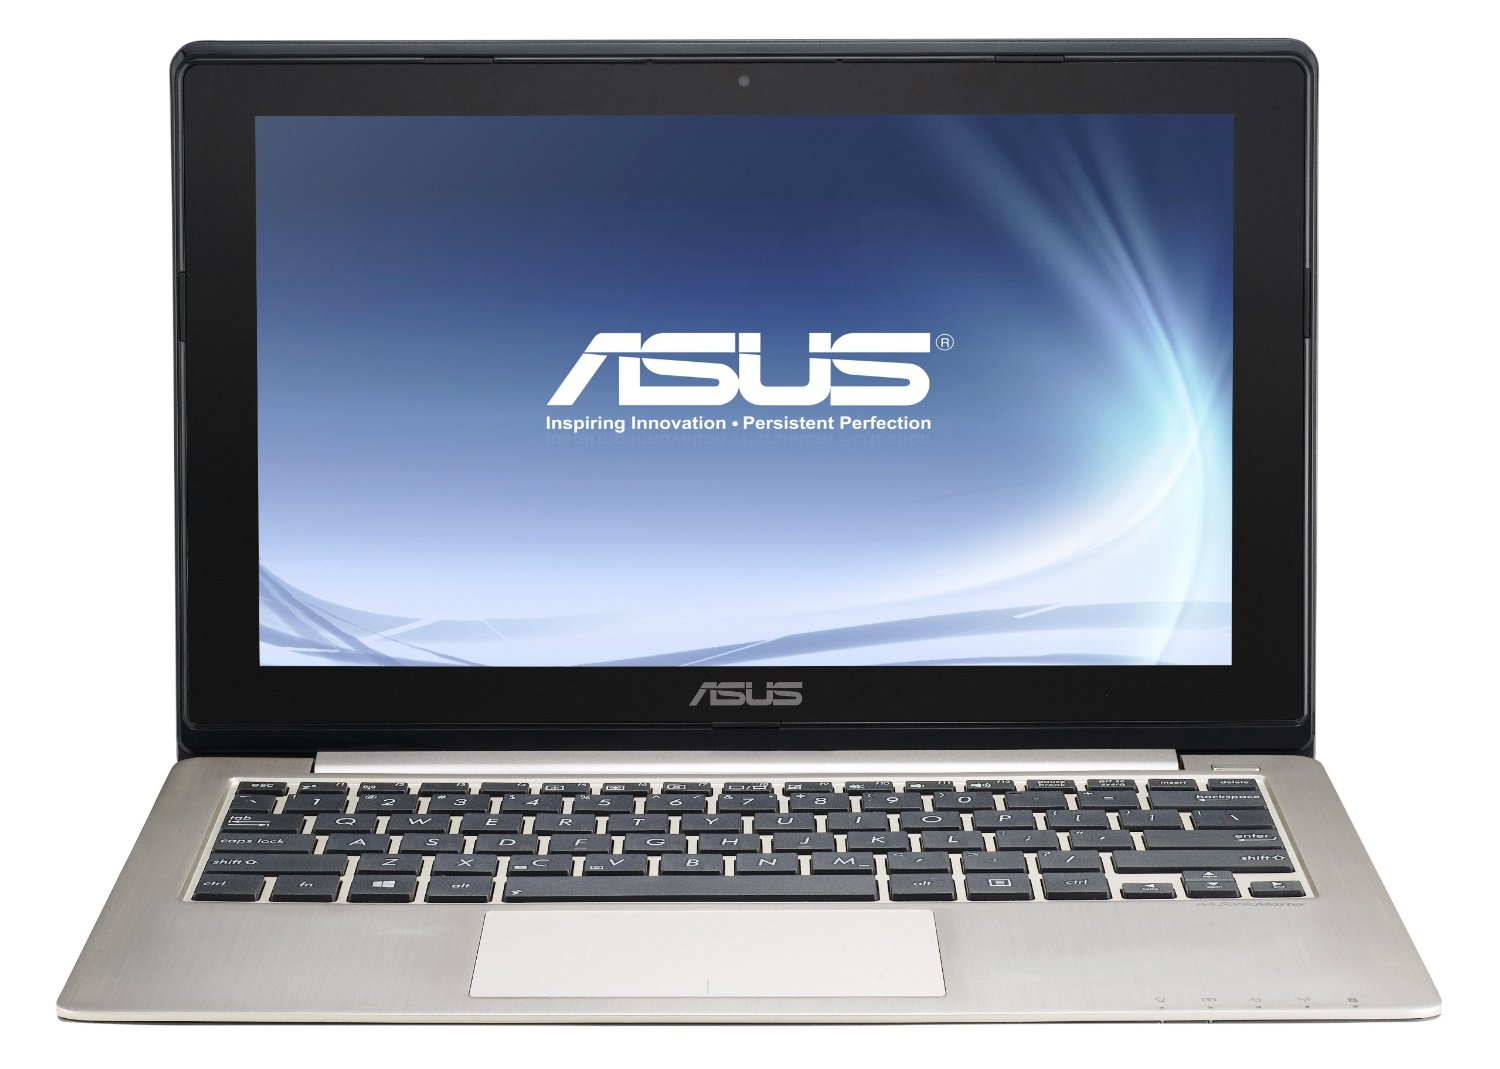 "ASUS VIVOBOOK S200E 11.6"" Touchscreen Mini Laptop Intel ..."